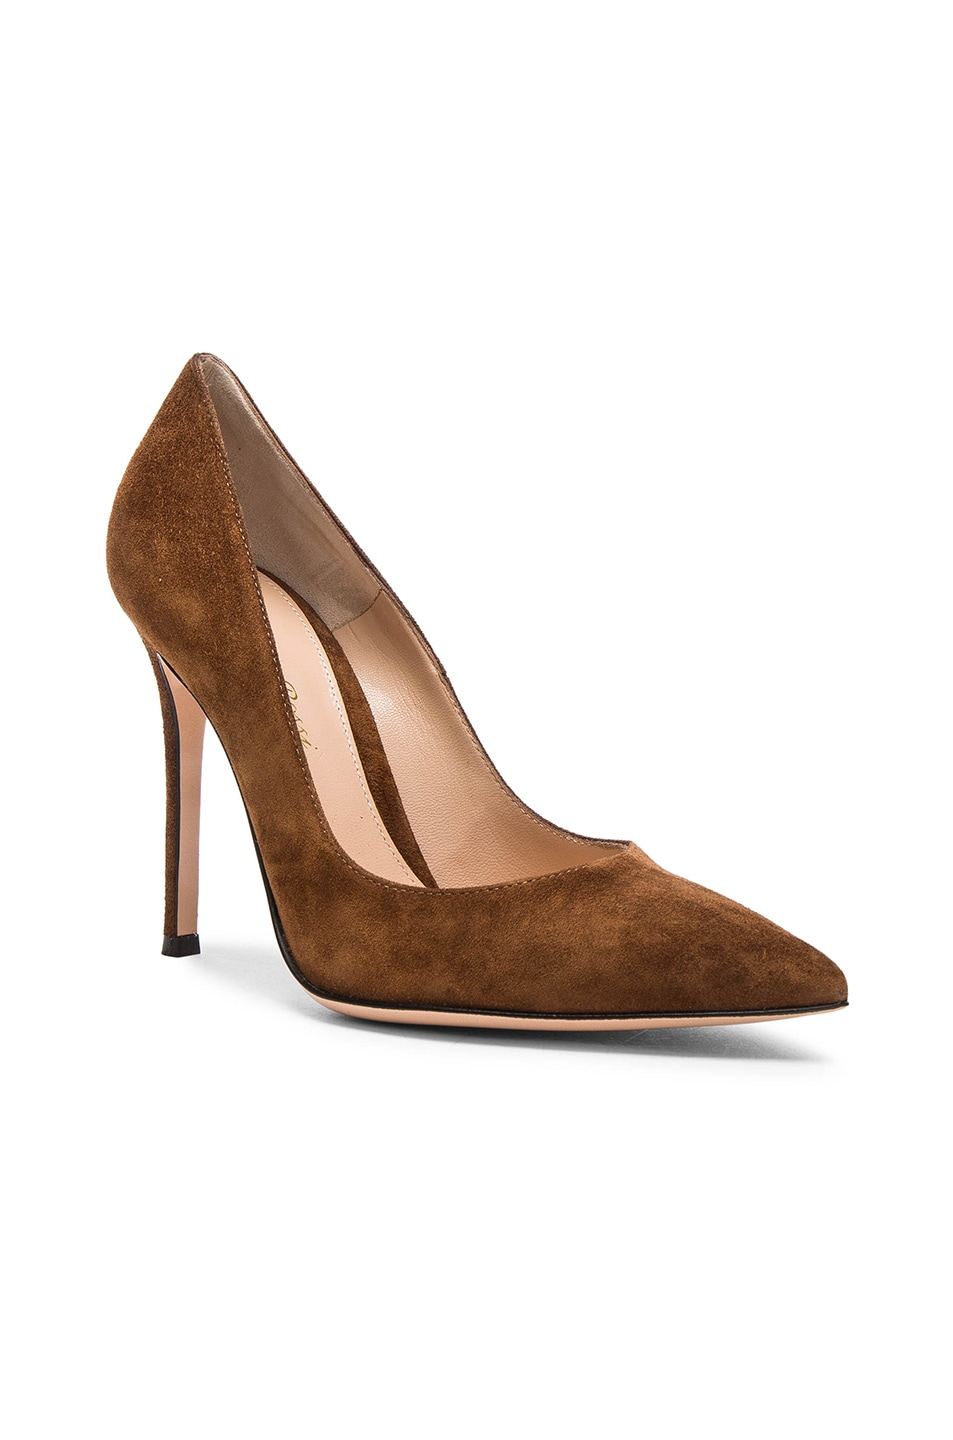 Image 2 of Gianvito Rossi Suede Pumps in Texas